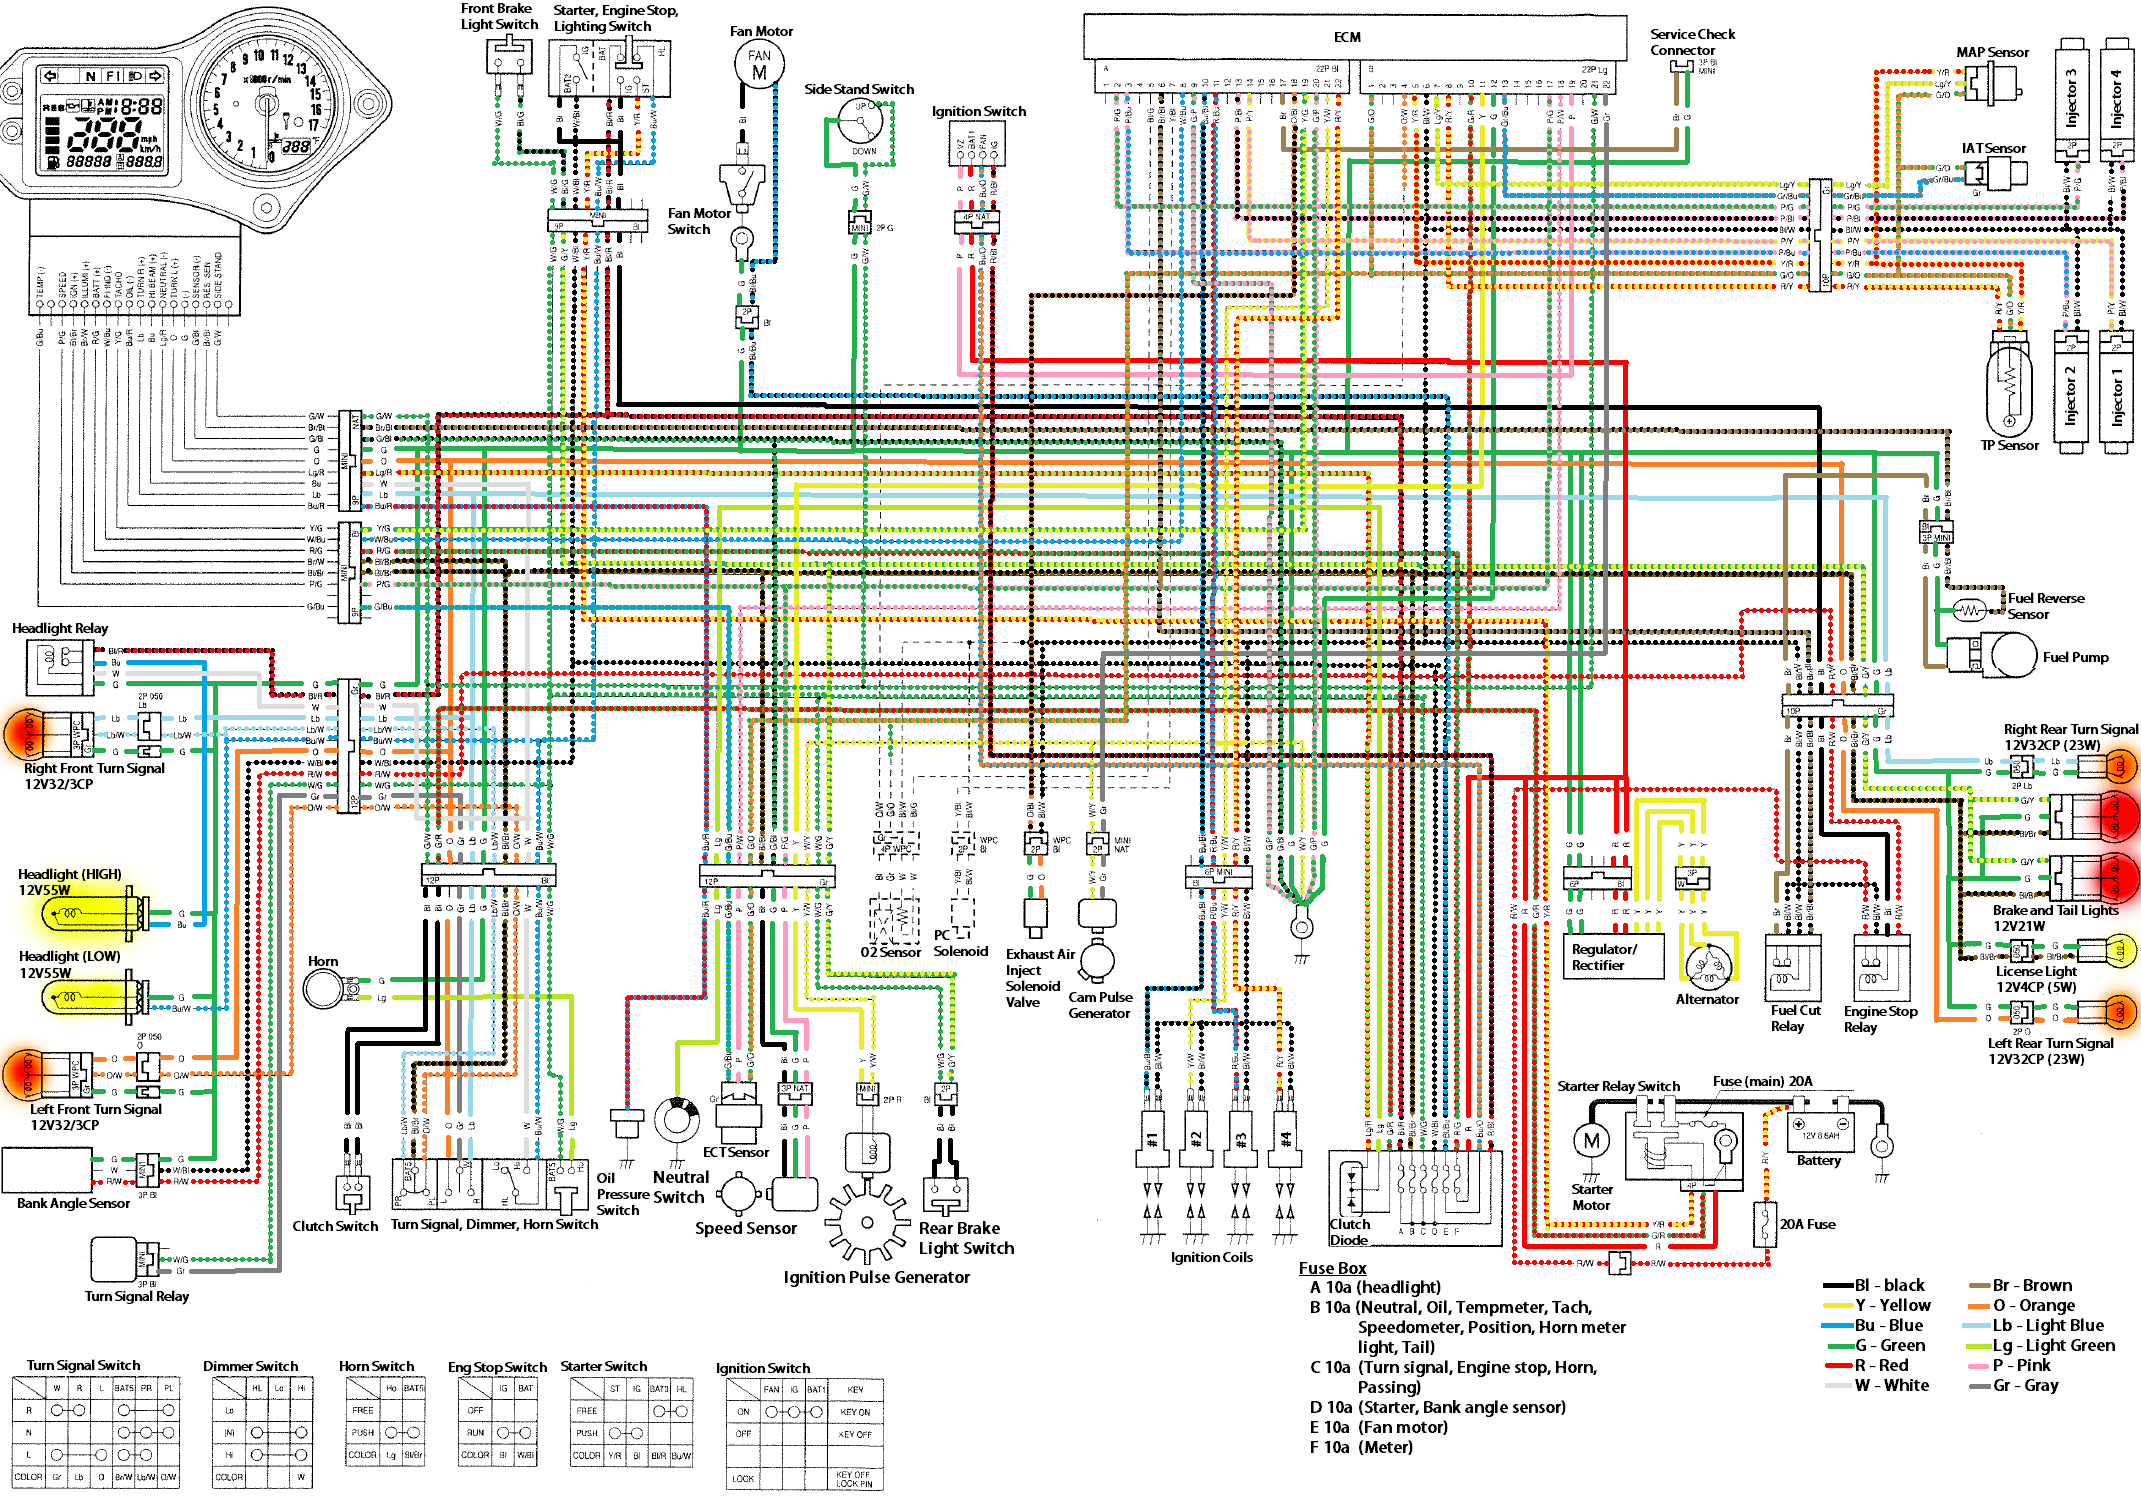 cbr 600 f4i wiring diagram dimmer three way switch 97 dodge get free image about